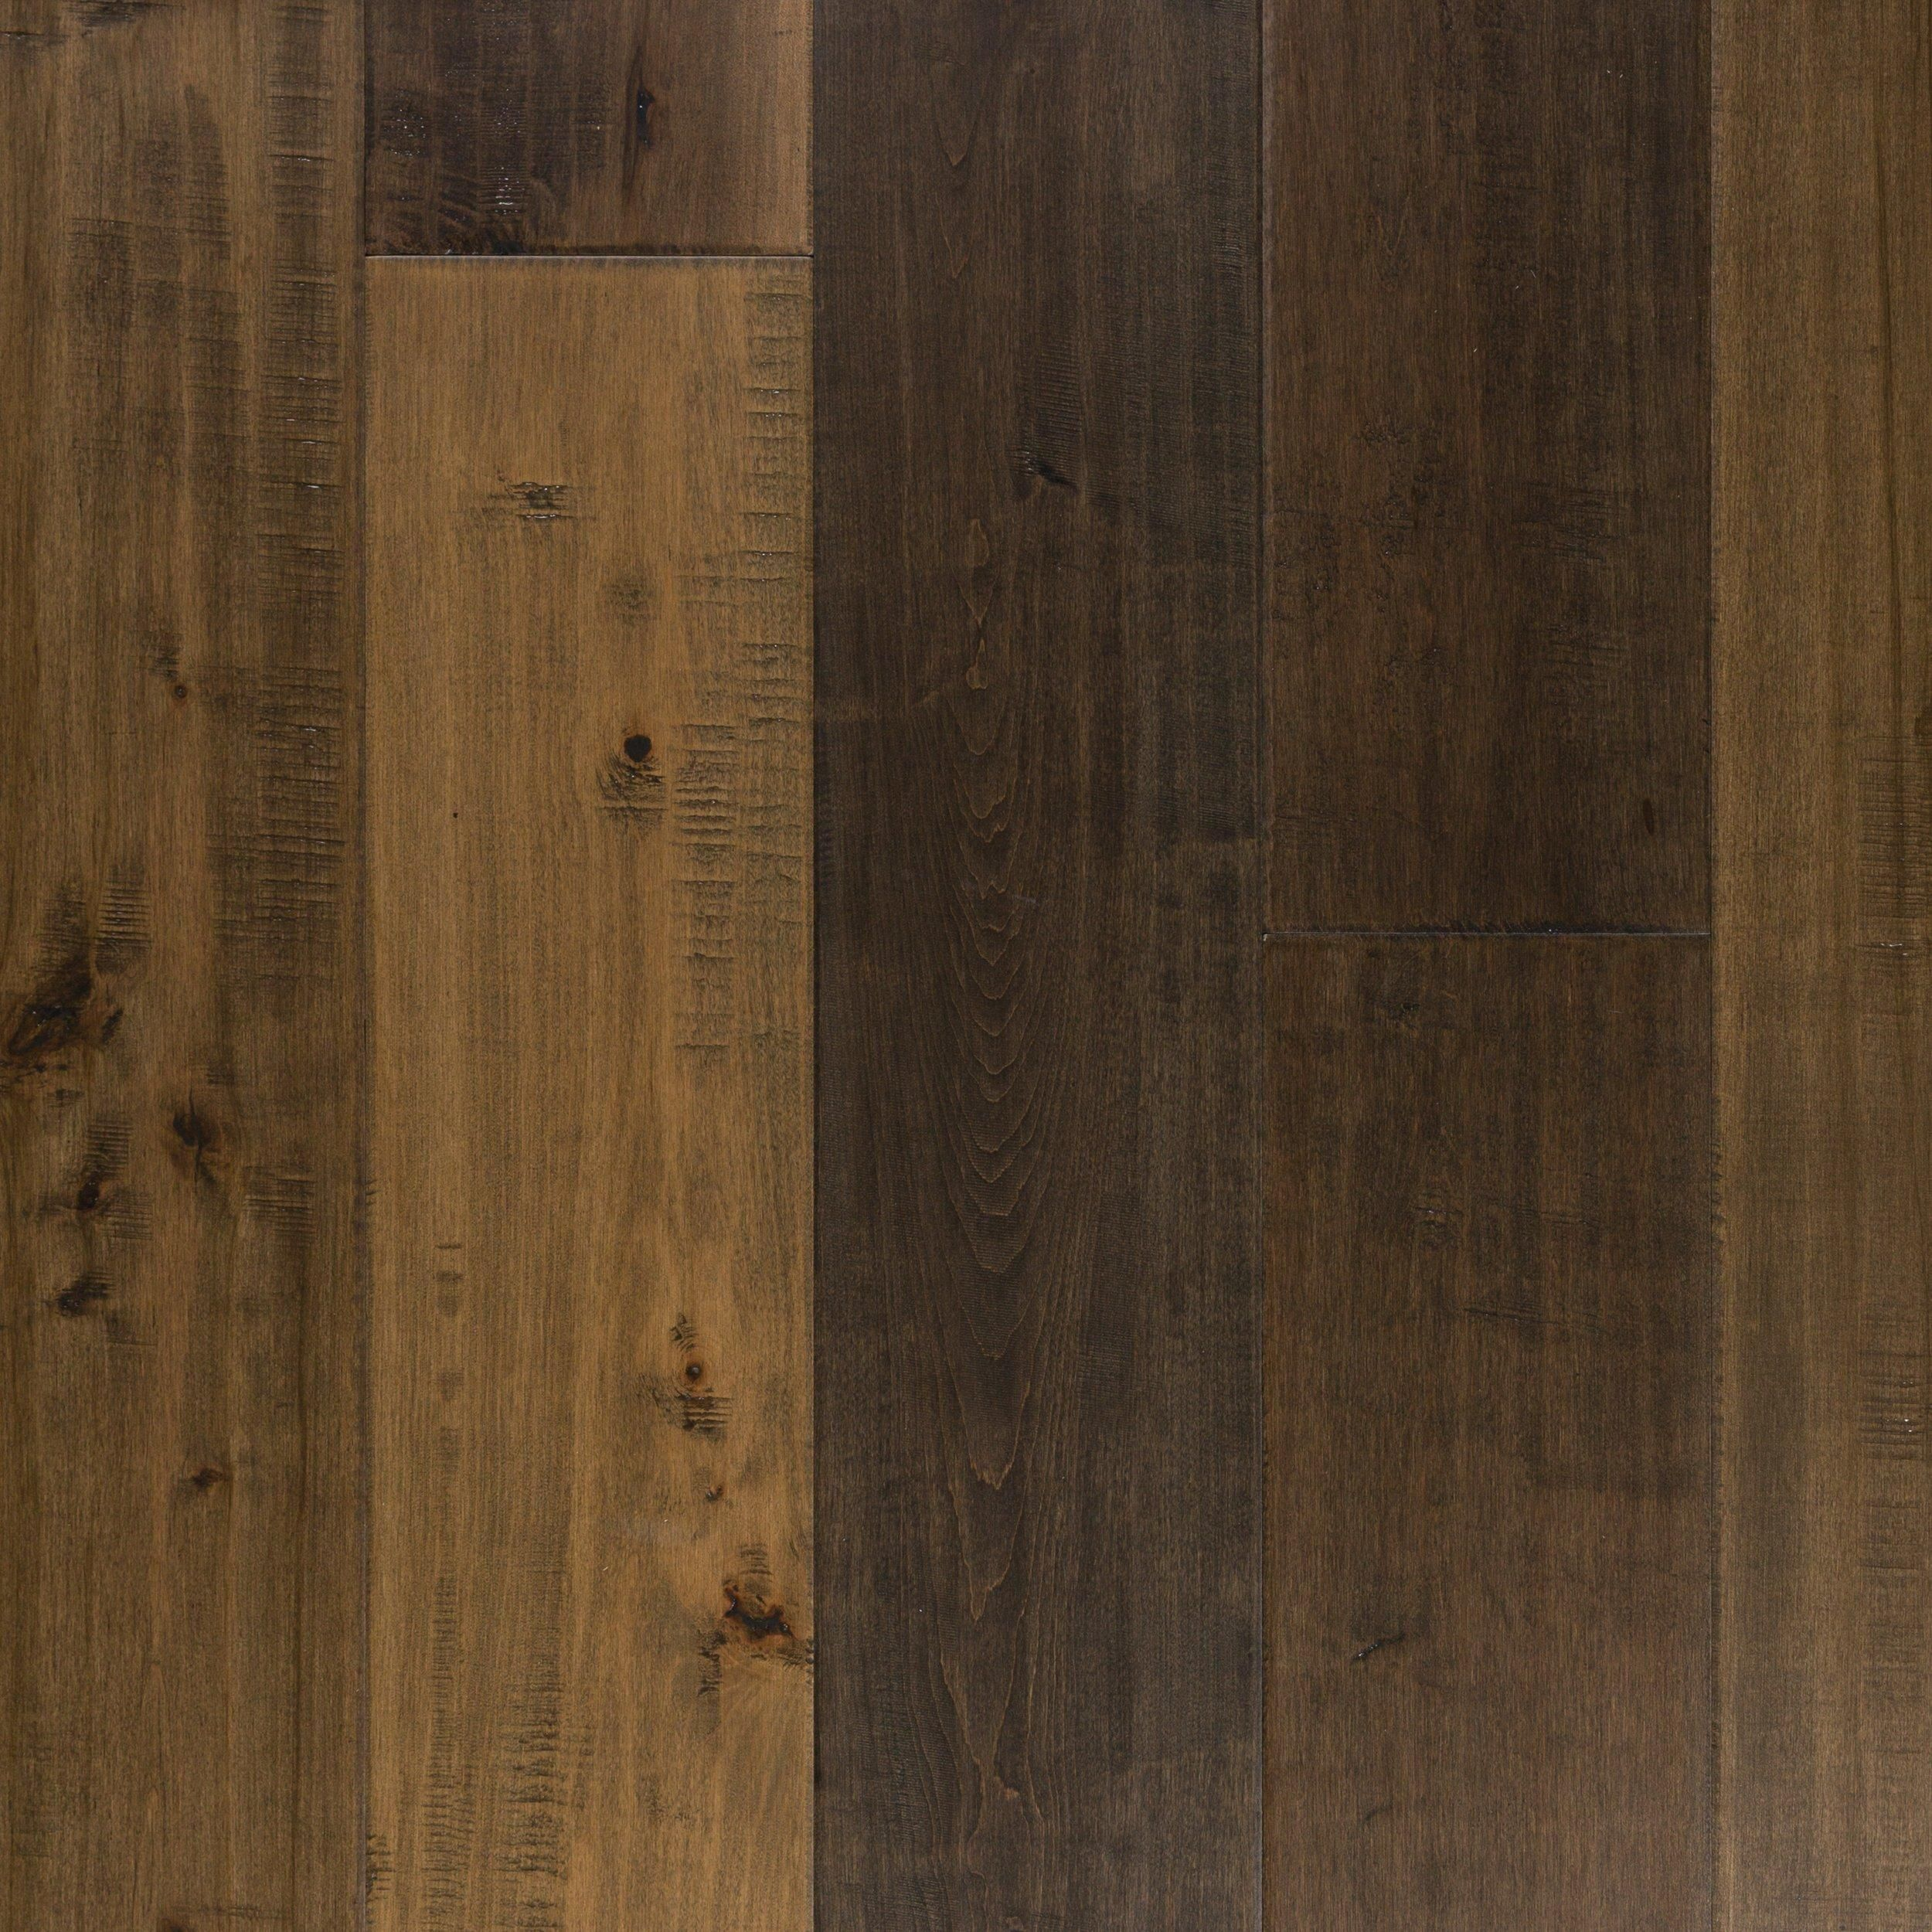 Valerian Bronze Maple Engineered Hardwood In 2020 Wood Floors Wide Plank Hardwood Floors Hardwood